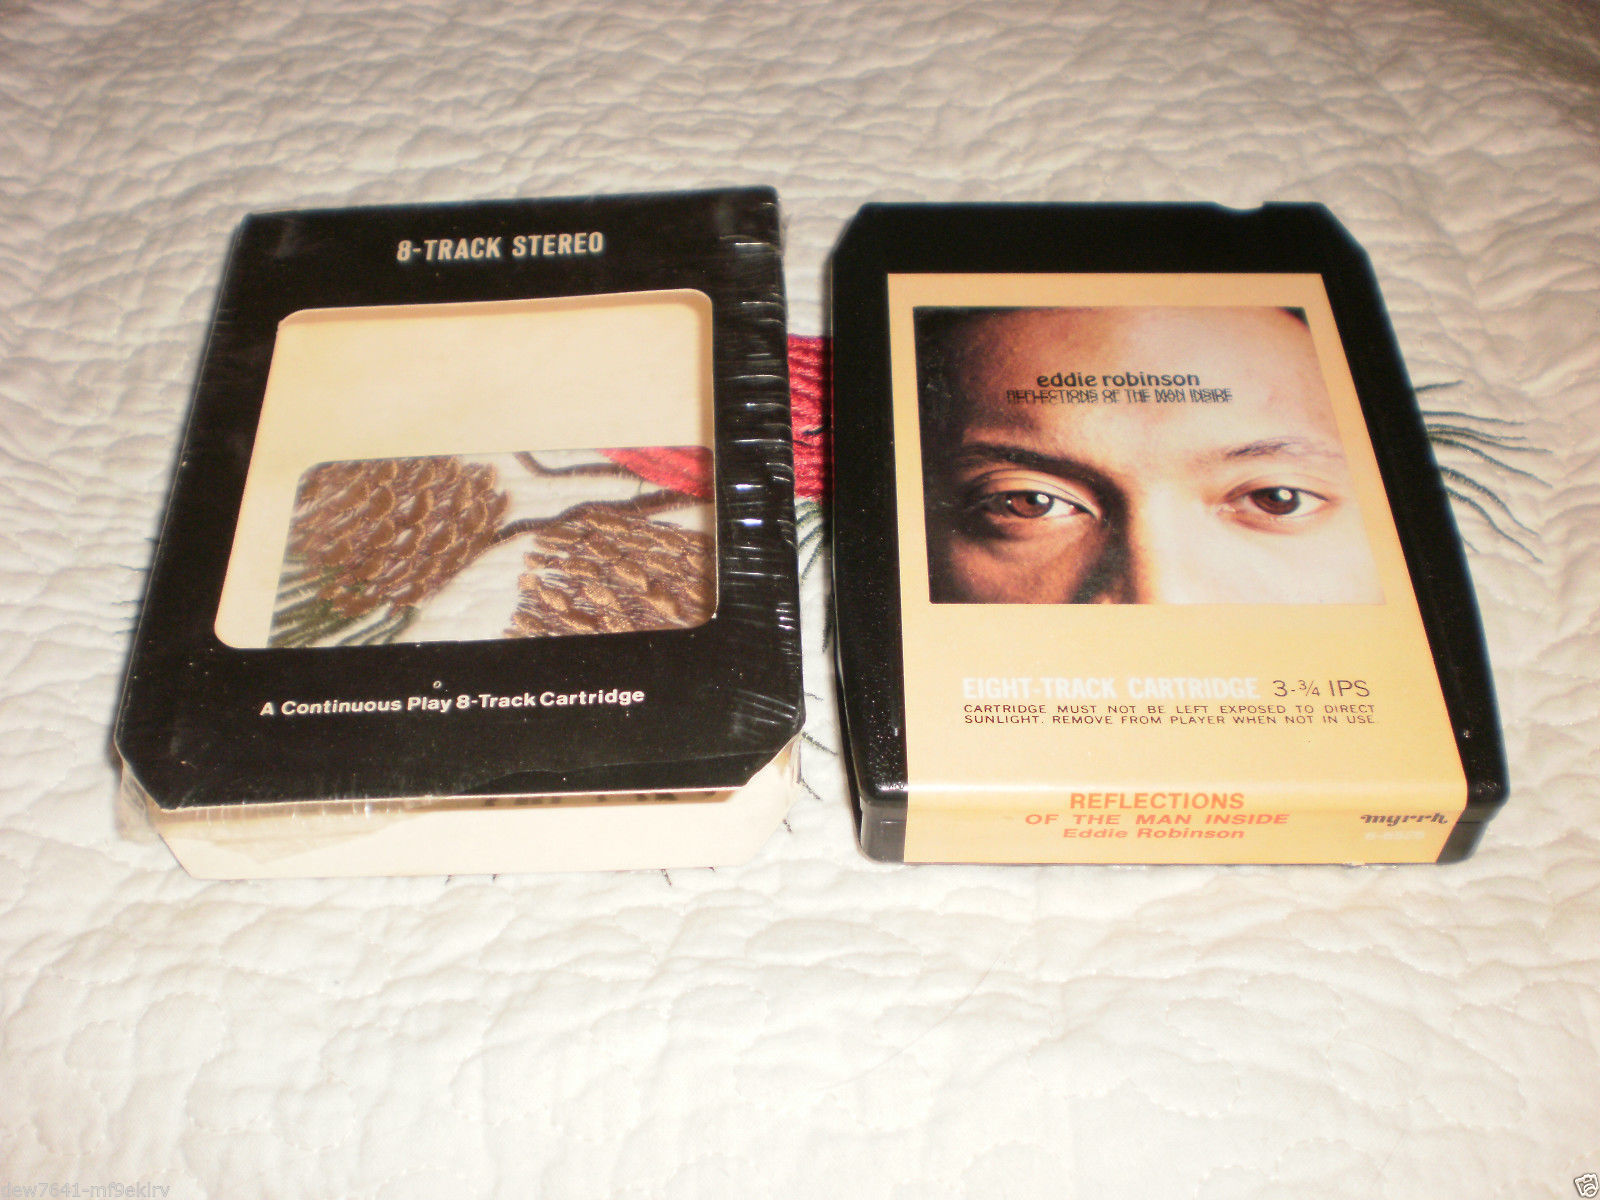 Primary image for Eddie Robinson Reflections of the Man Inside 8 track tape